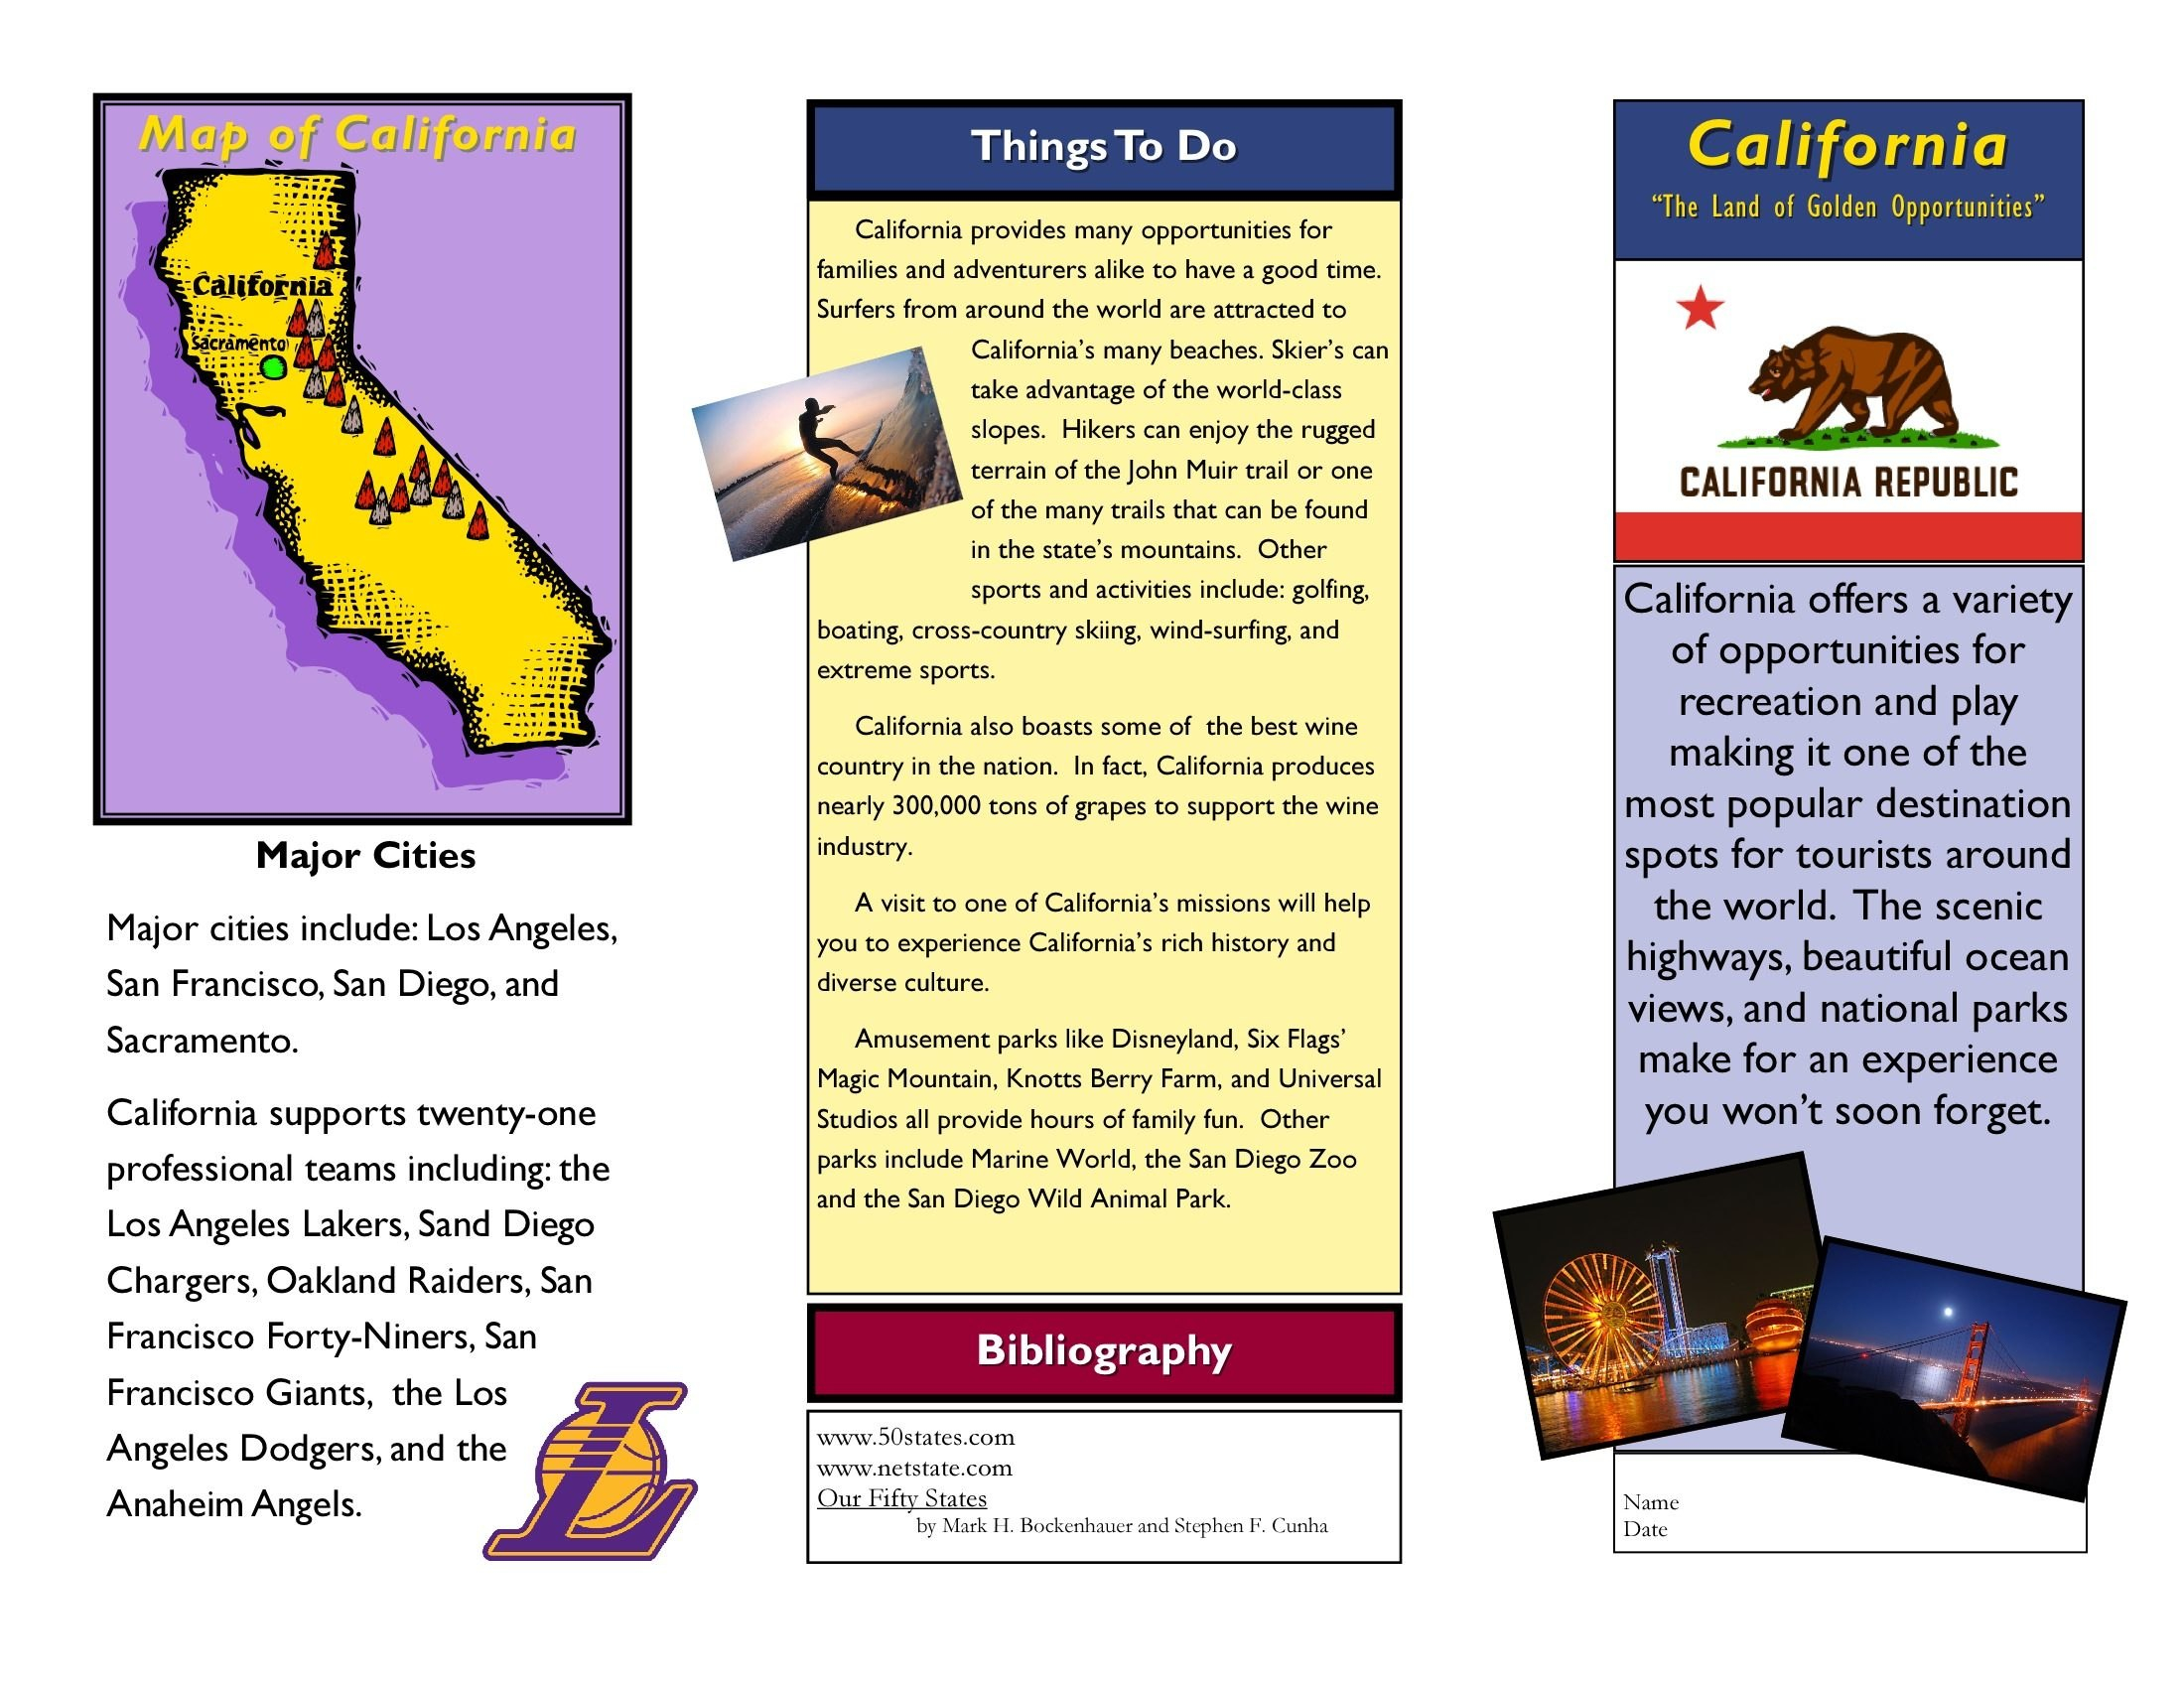 Travel Brochure Examples For Students  Theveliger With Regard To Travel Brochure Template For Students